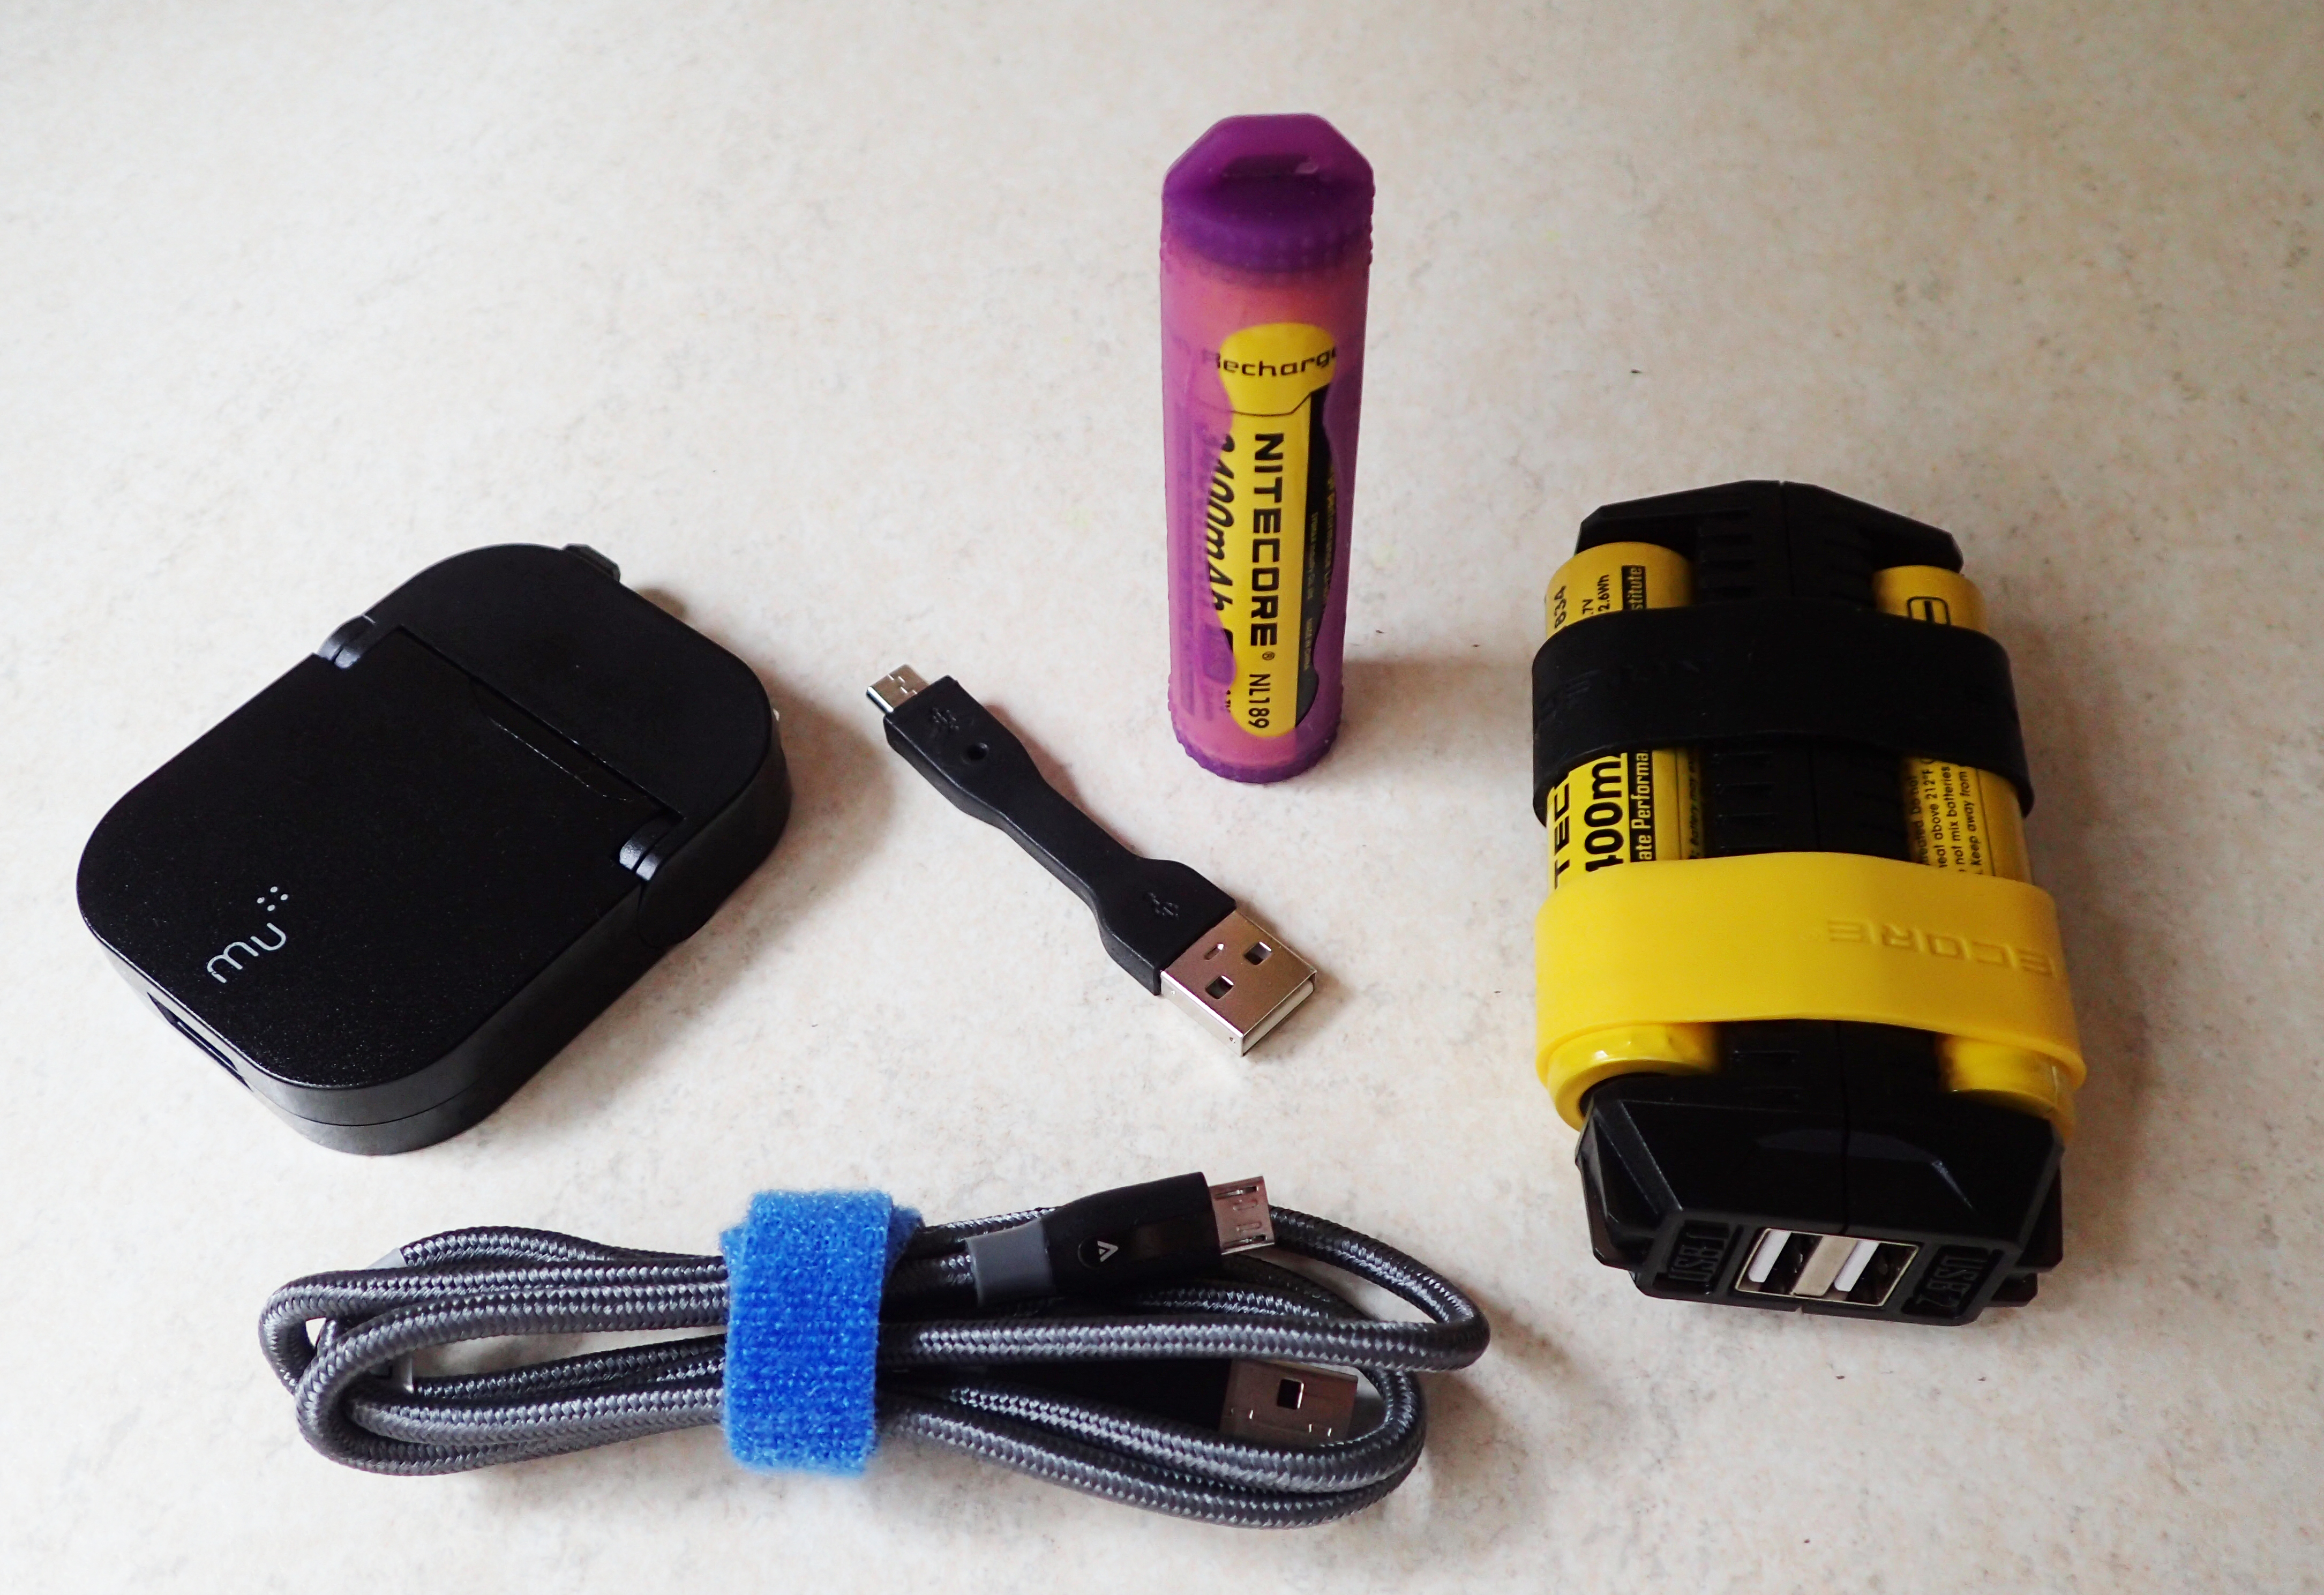 Powerbank, charge leads and plug for walks of a week or more